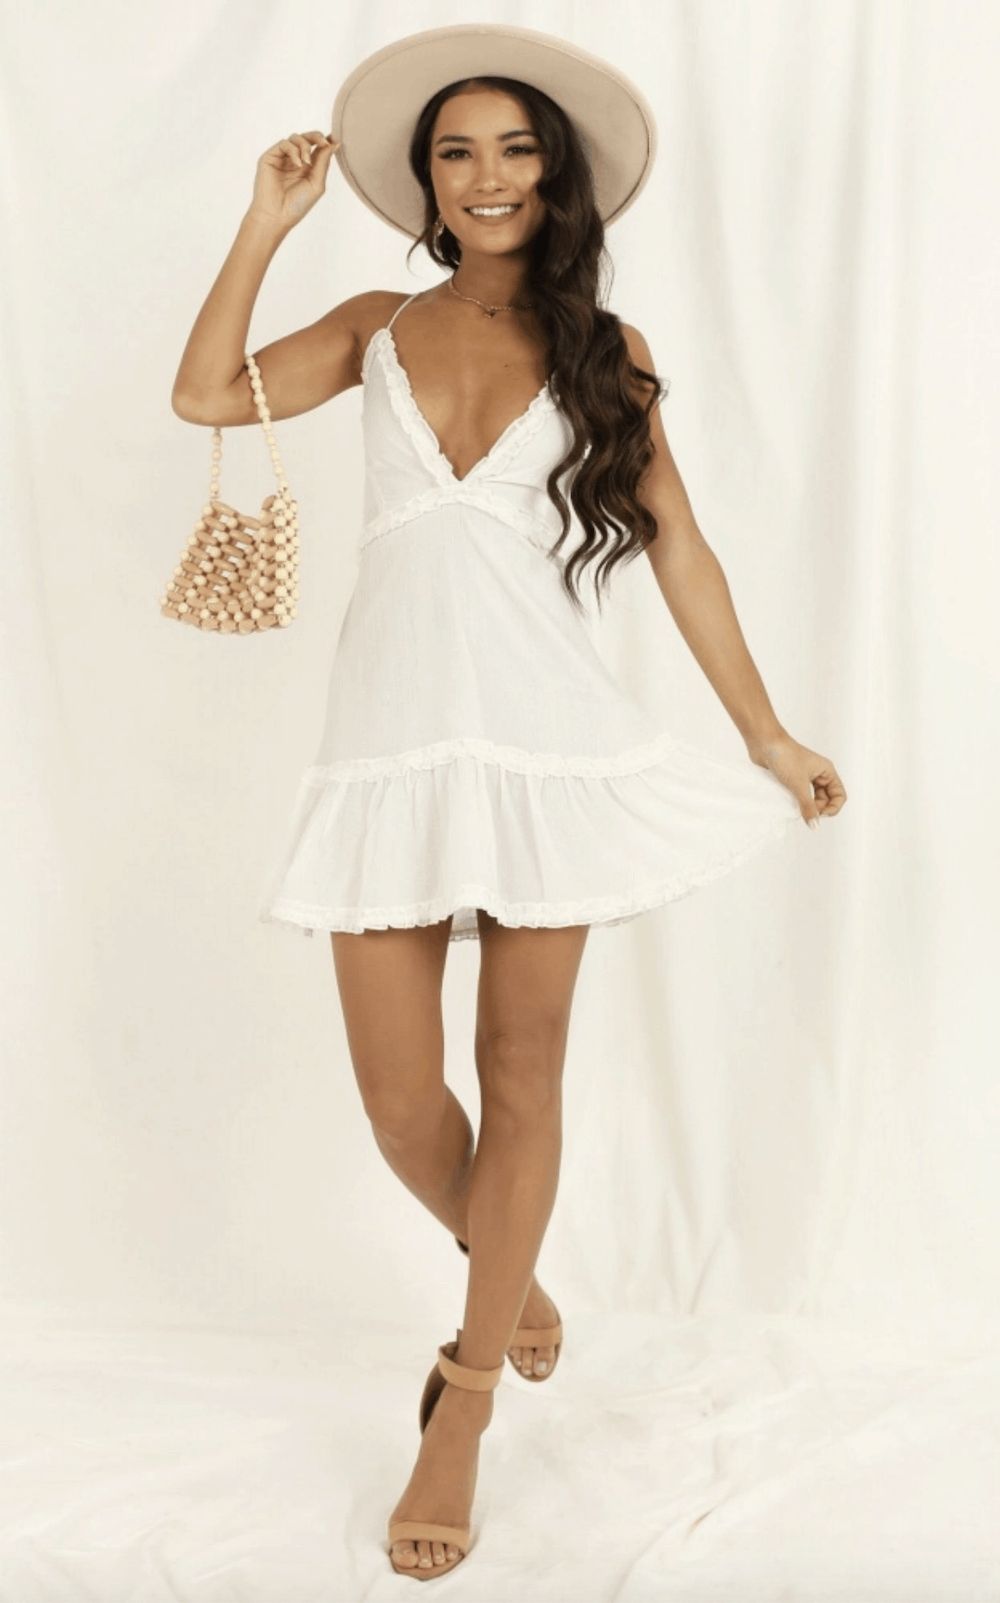 Perfect Summer Outfits for The Beach Cutest White Sun Dresses for This Summer Showpo 2